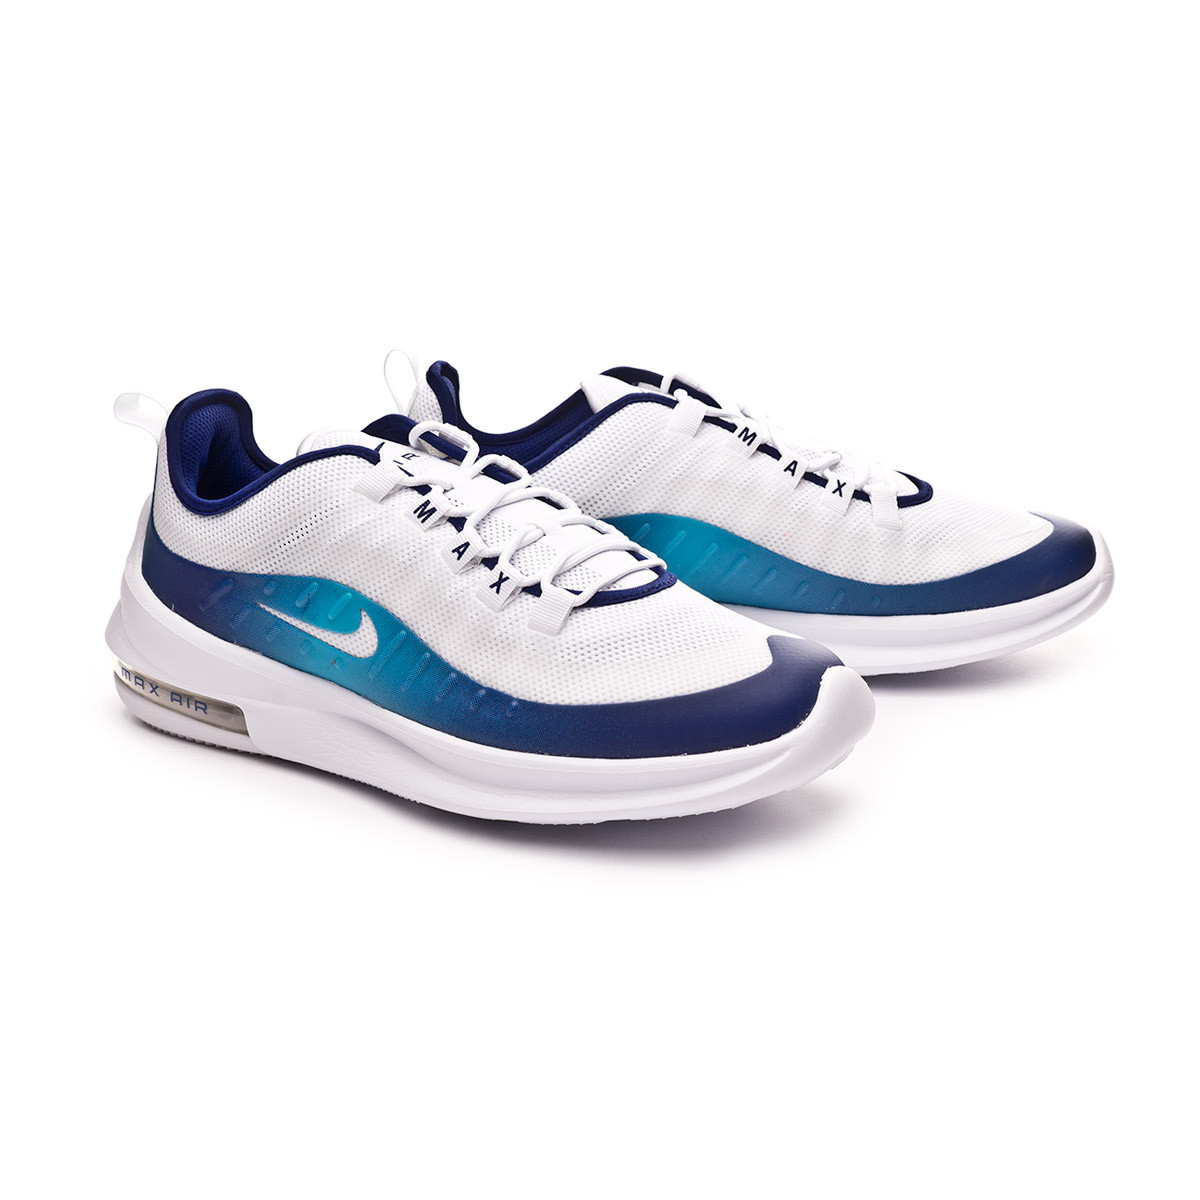 c6db5640cc5d Trainers Nike Air Max Axis Premium White-Regendy purple-Light blue ...